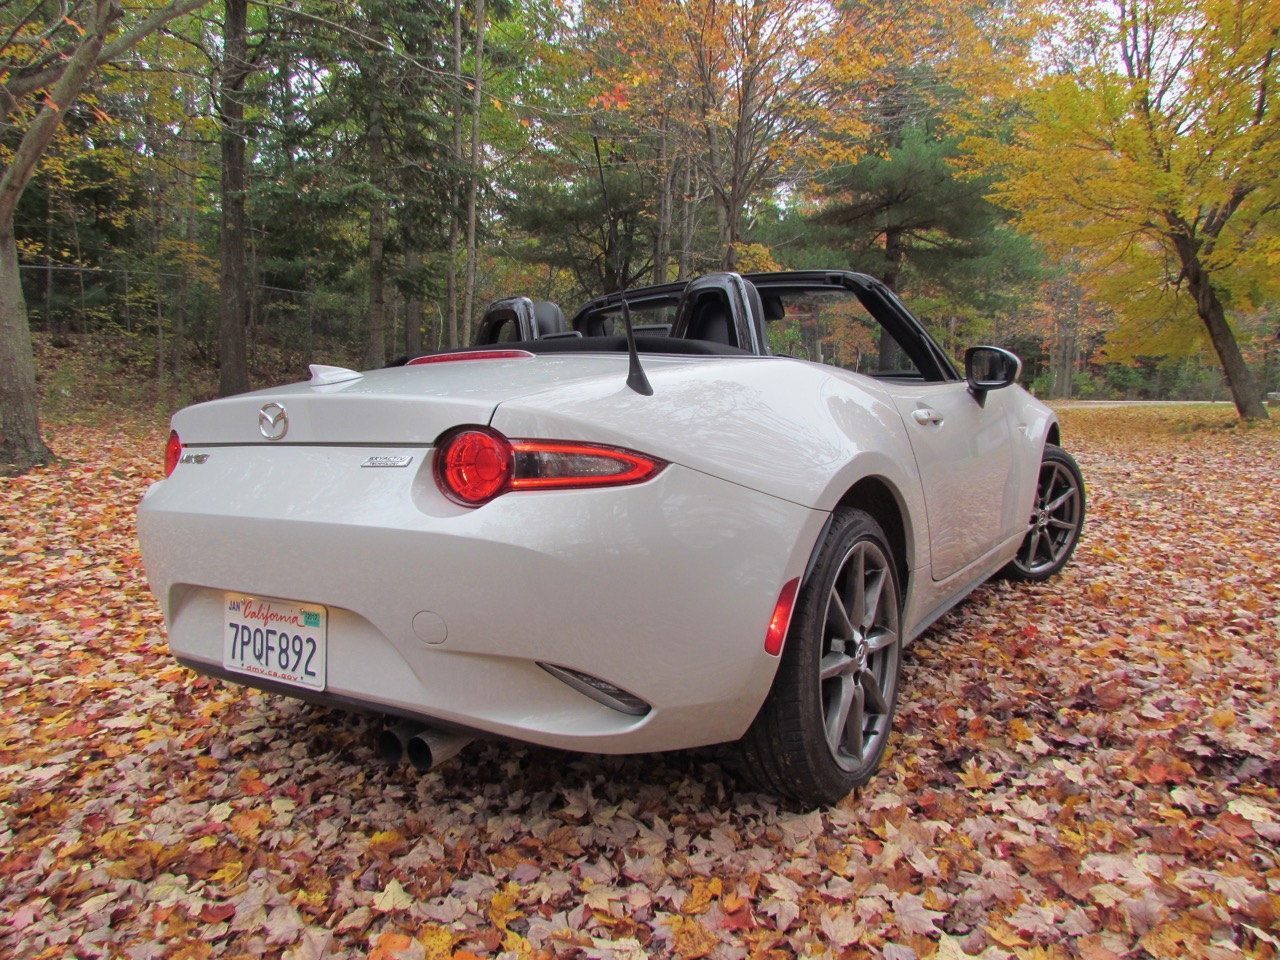 Miata's Ceramic-colored paint looks good against fallen autumn leaves